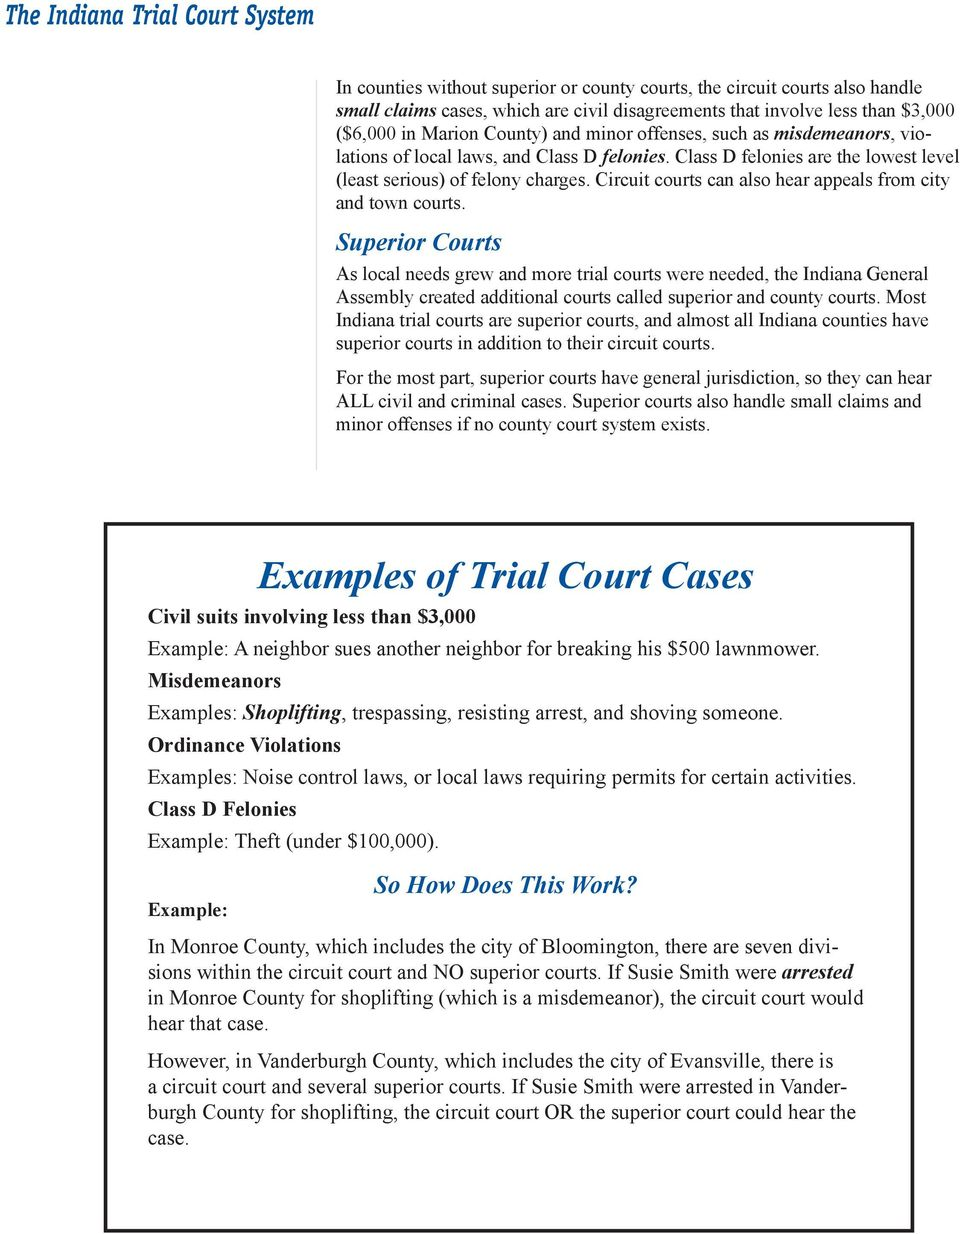 The Indiana Trial Court System - PDF